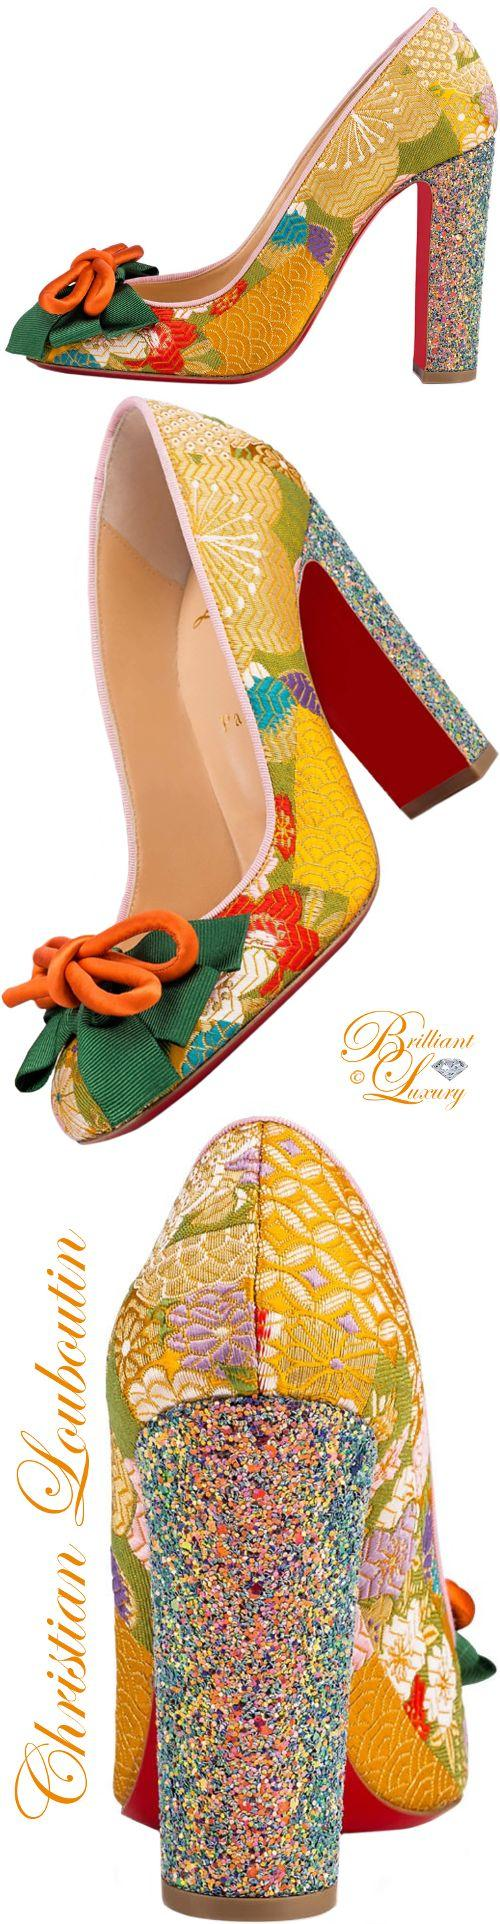 Boda - DOLLY DOLA TISSU OBI/GLITTER DRAGONFLY 100 Pollen Fabric - Women Shoes - Christian Louboutin